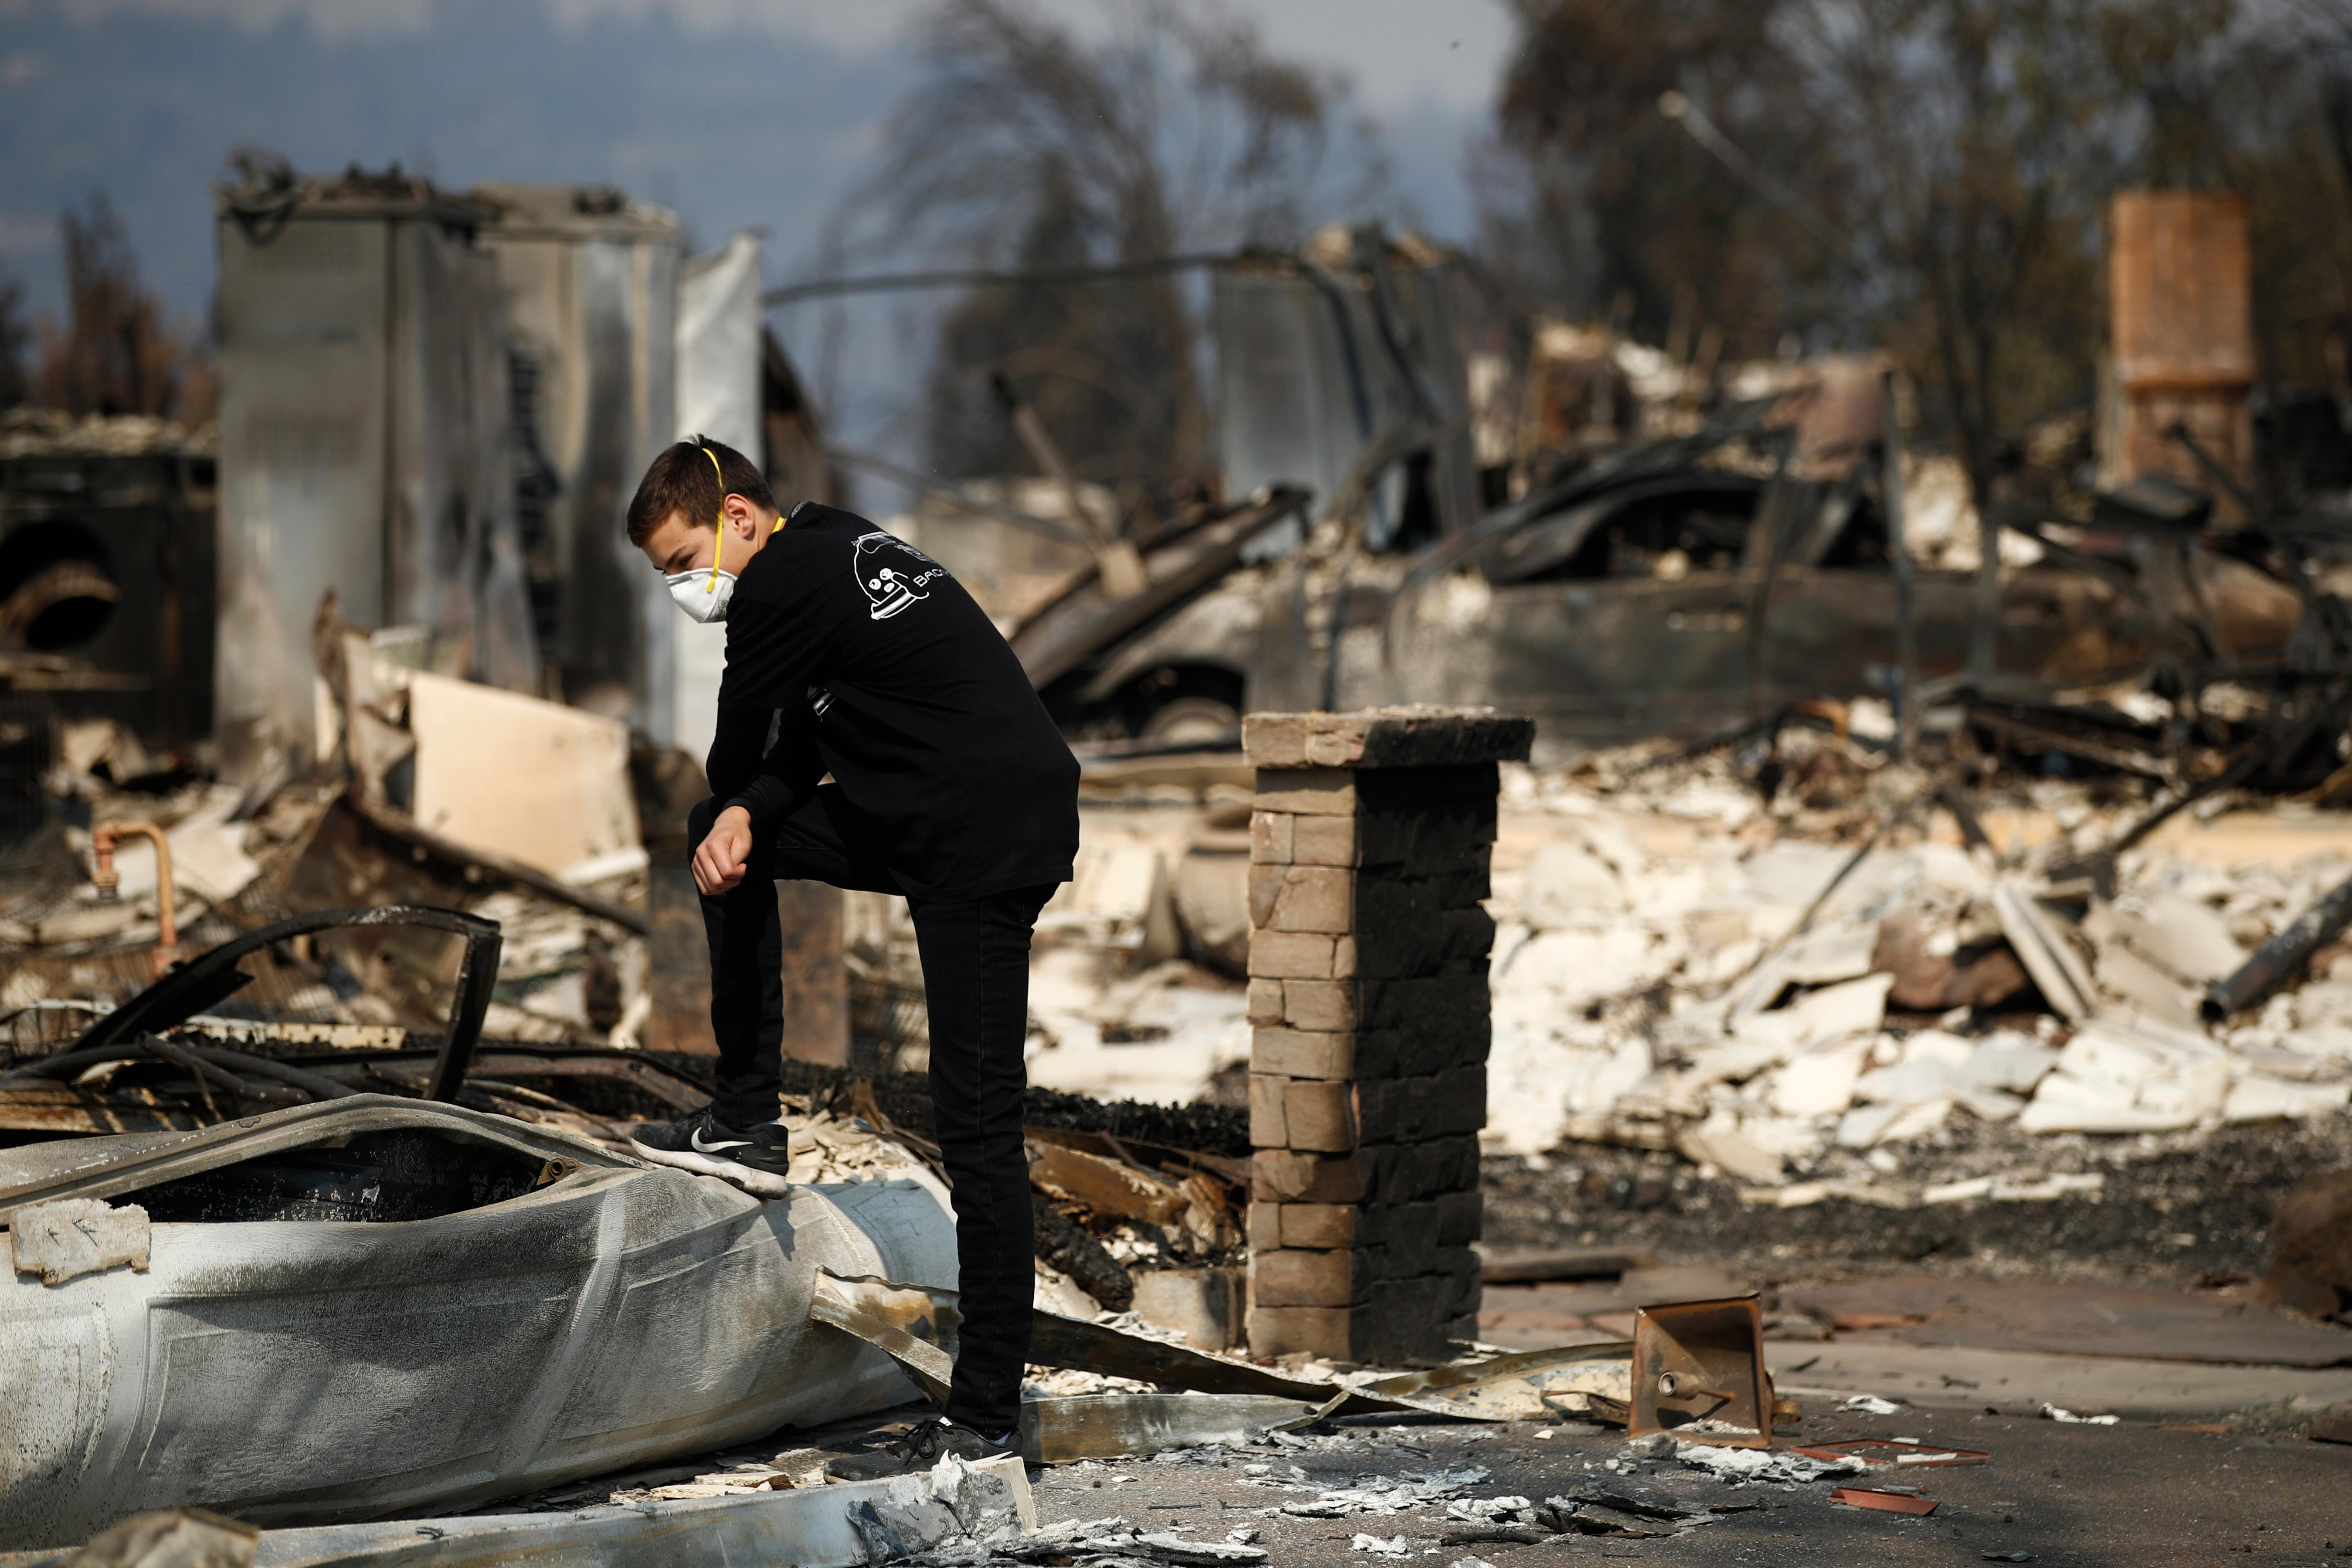 "Benjamin Lasker, 16, pauses while looking at what remains of his home after a wildfire swept through Sunday, Oct. 15, 2017, in Santa Rosa, Calif. With the winds dying down, fire officials said Sunday they have apparently ""turned a corner"" against the wildfires that have devastated California wine country and other parts of the state over the past week, and thousands of people got the all-clear to return home. (AP Photo/Jae C. Hong)"